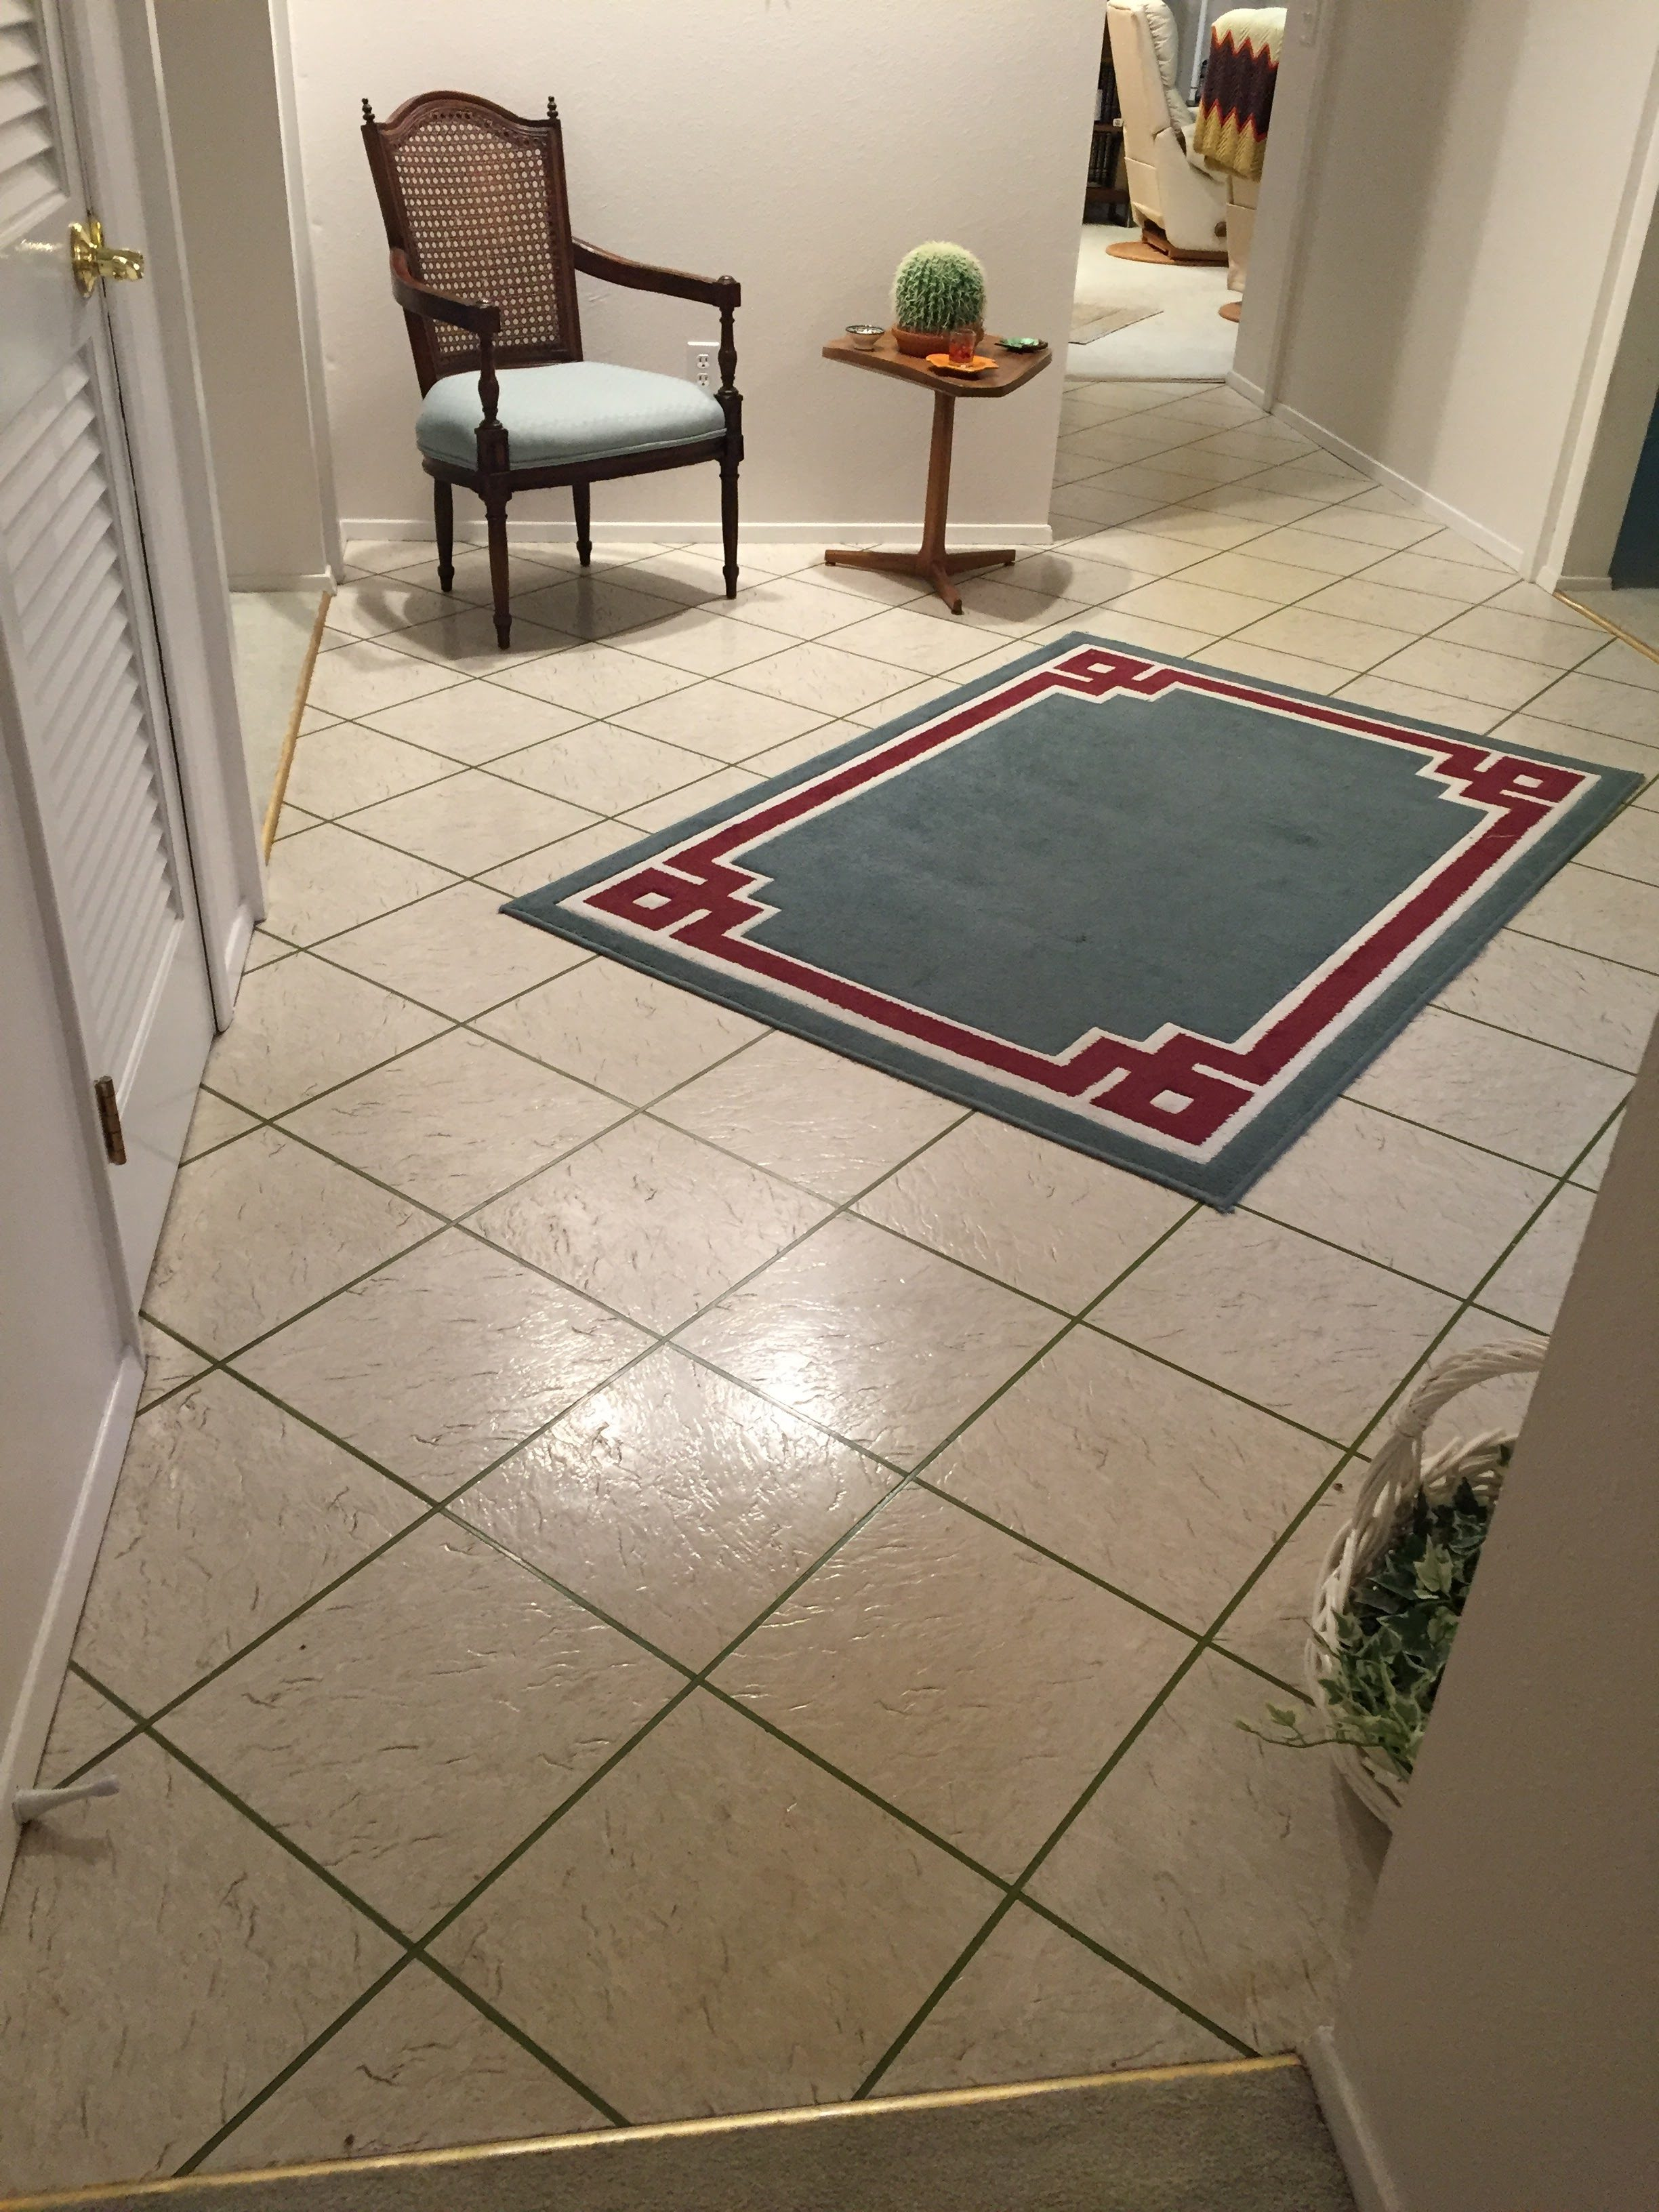 Tile before installation